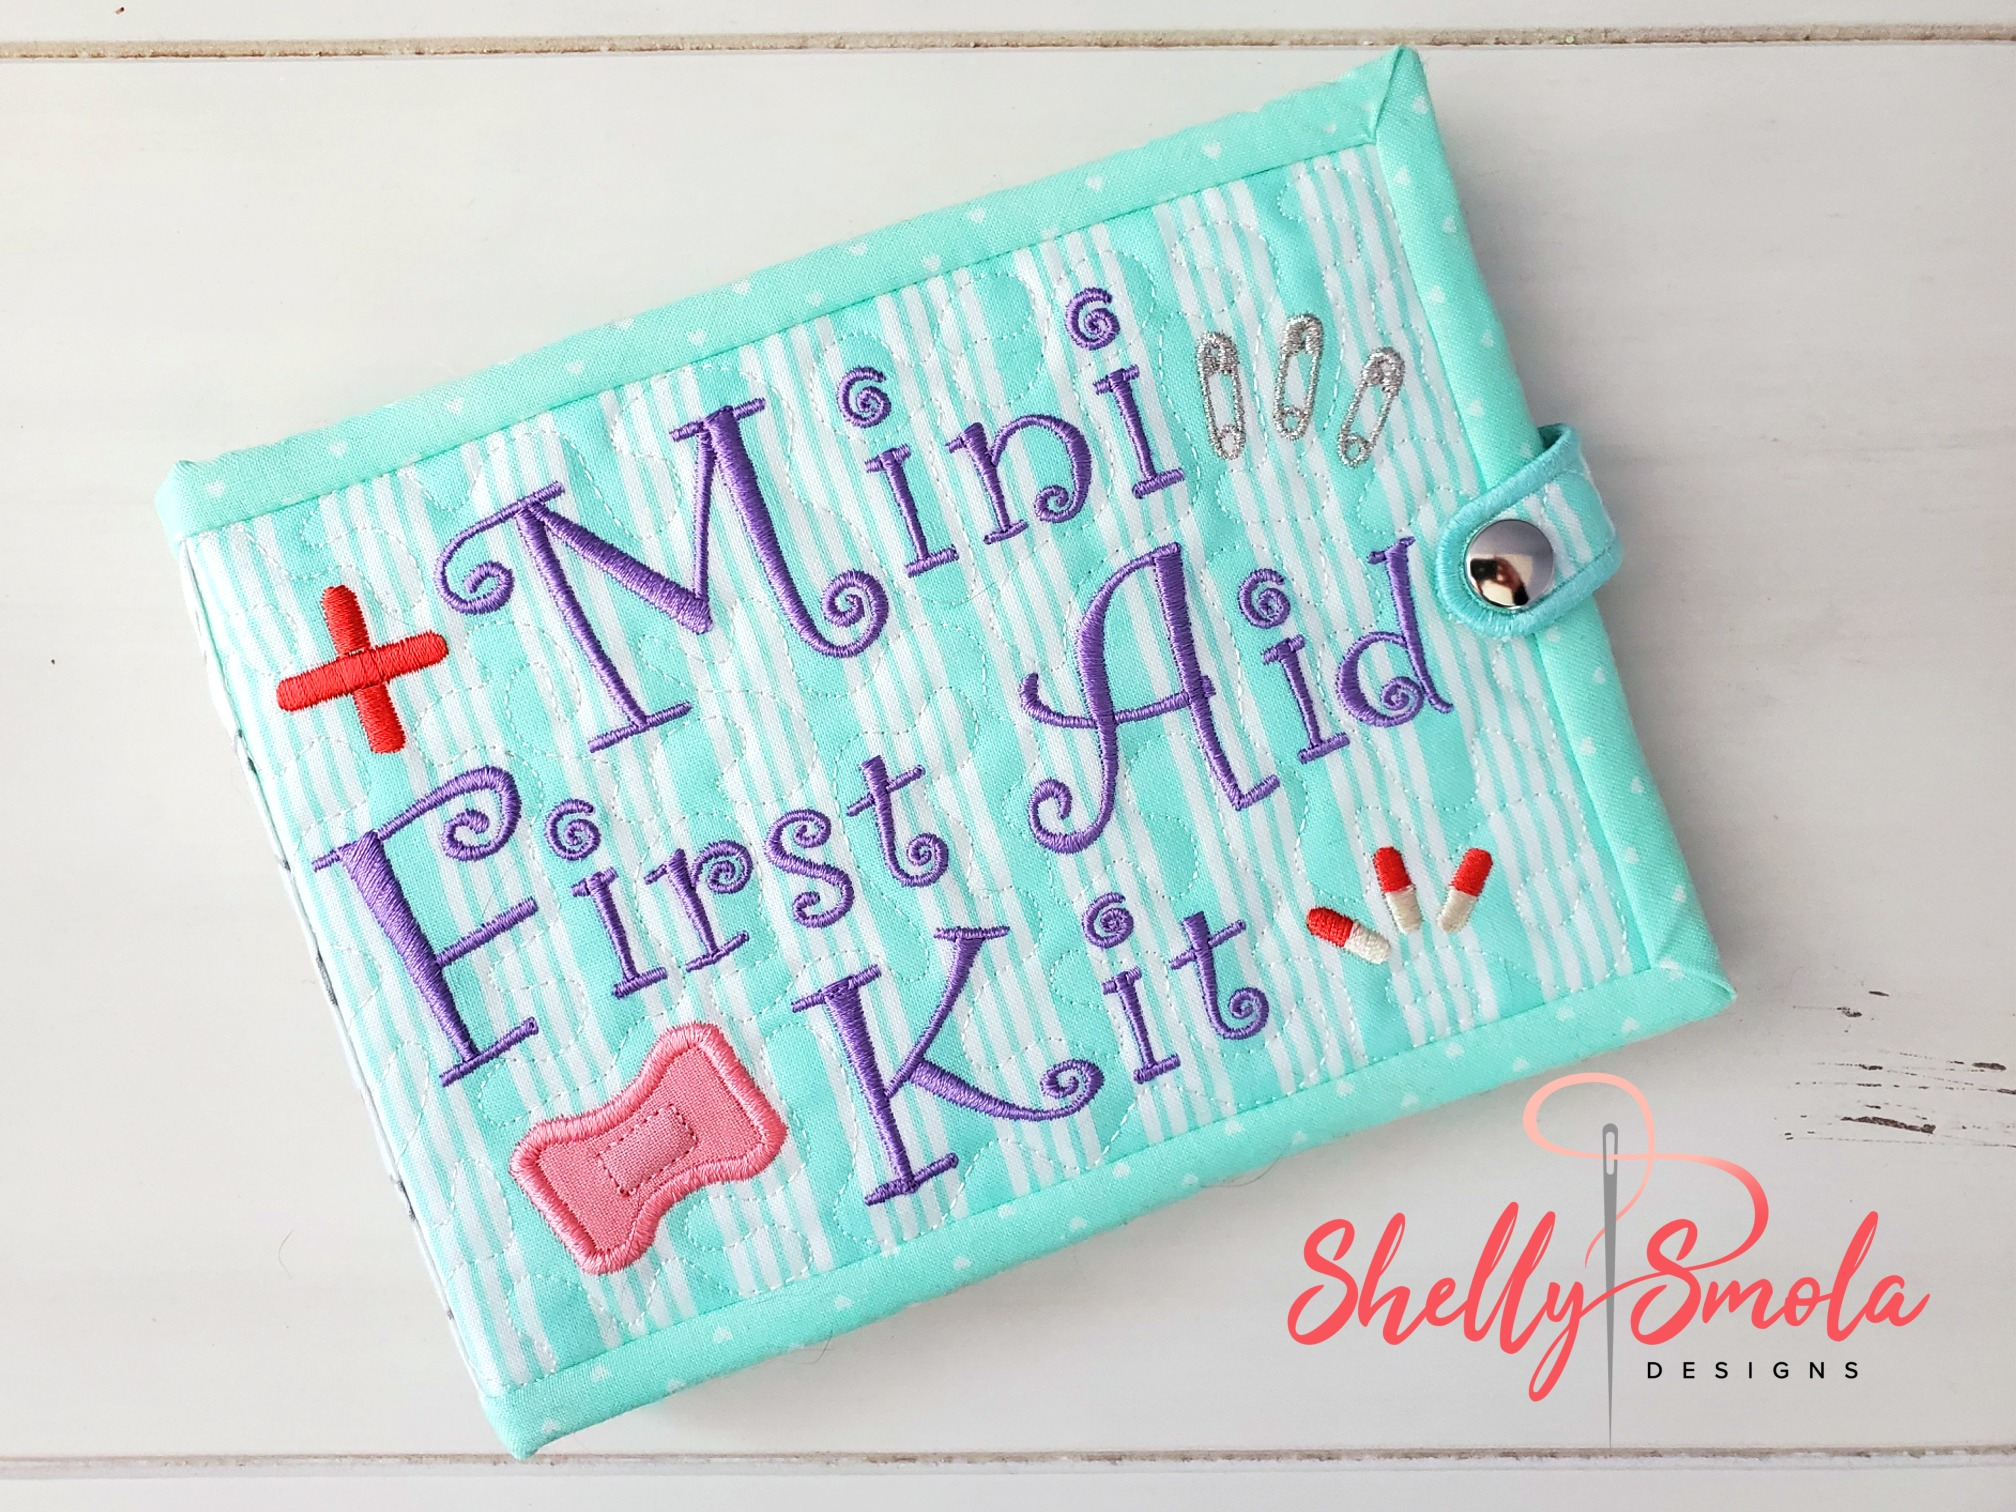 First Aidl Kit by Shelly Smola Designs